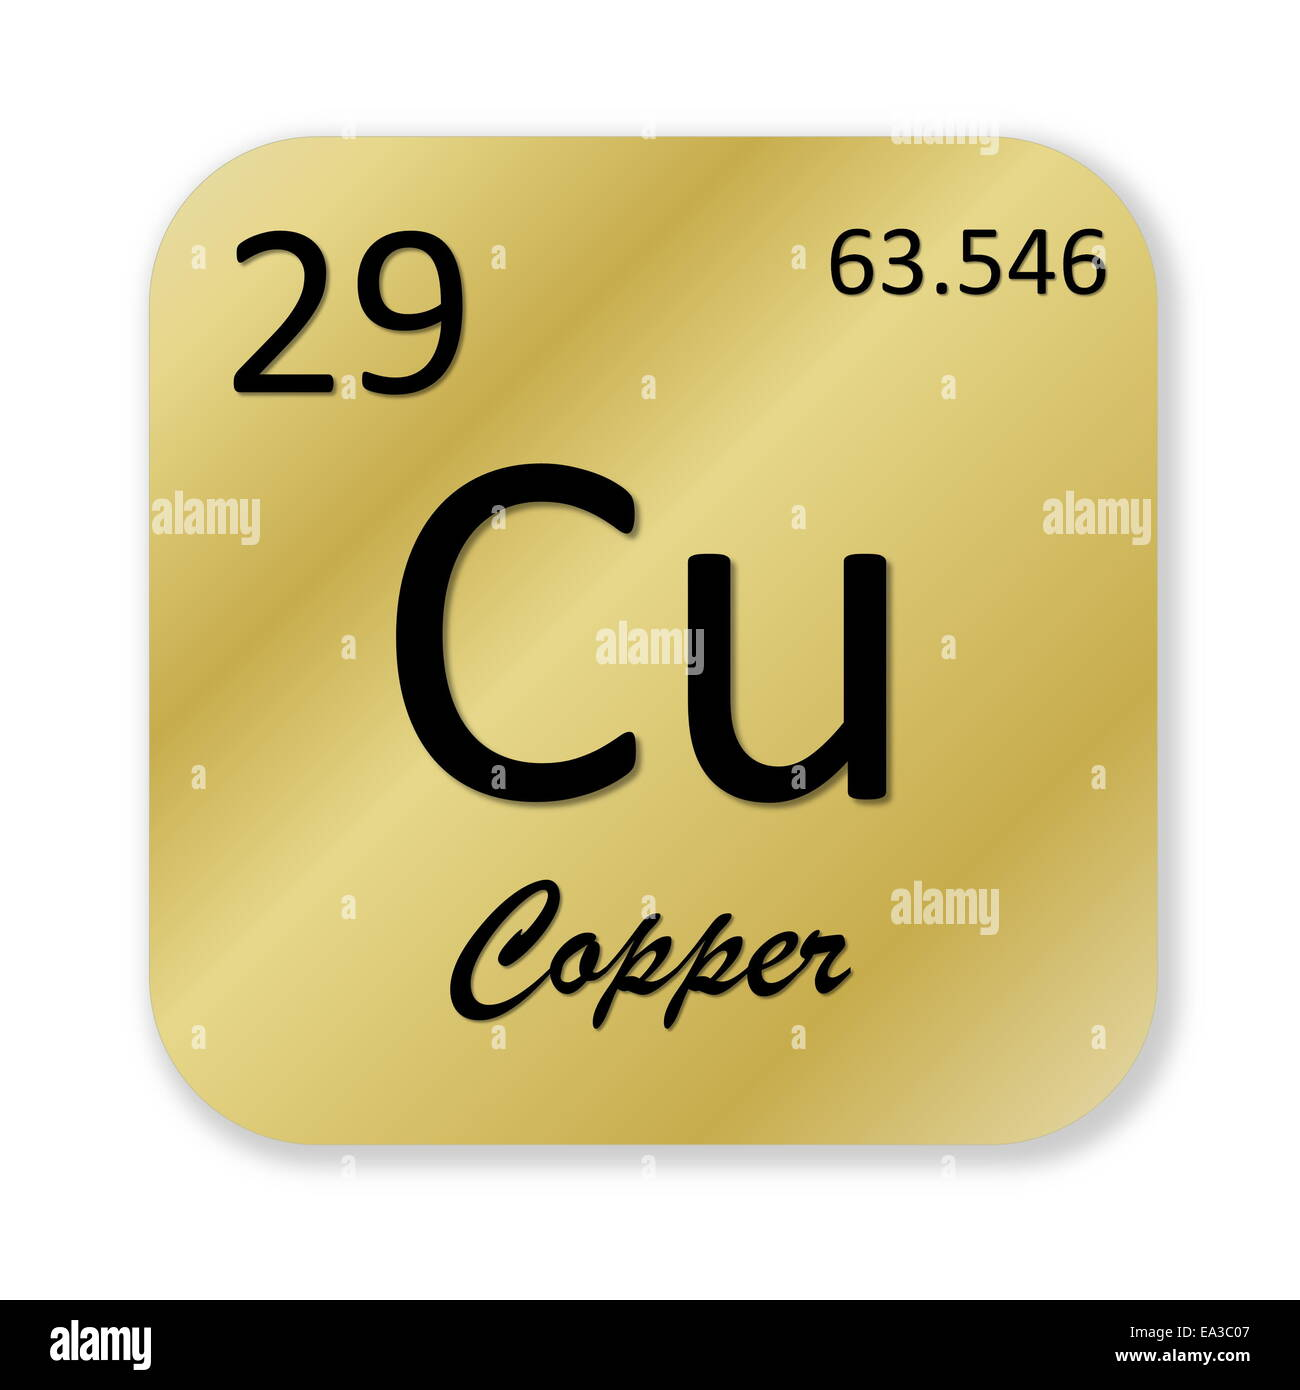 Copper element stock photo royalty free image 75063303 alamy copper element copper element stock photo buycottarizona Image collections